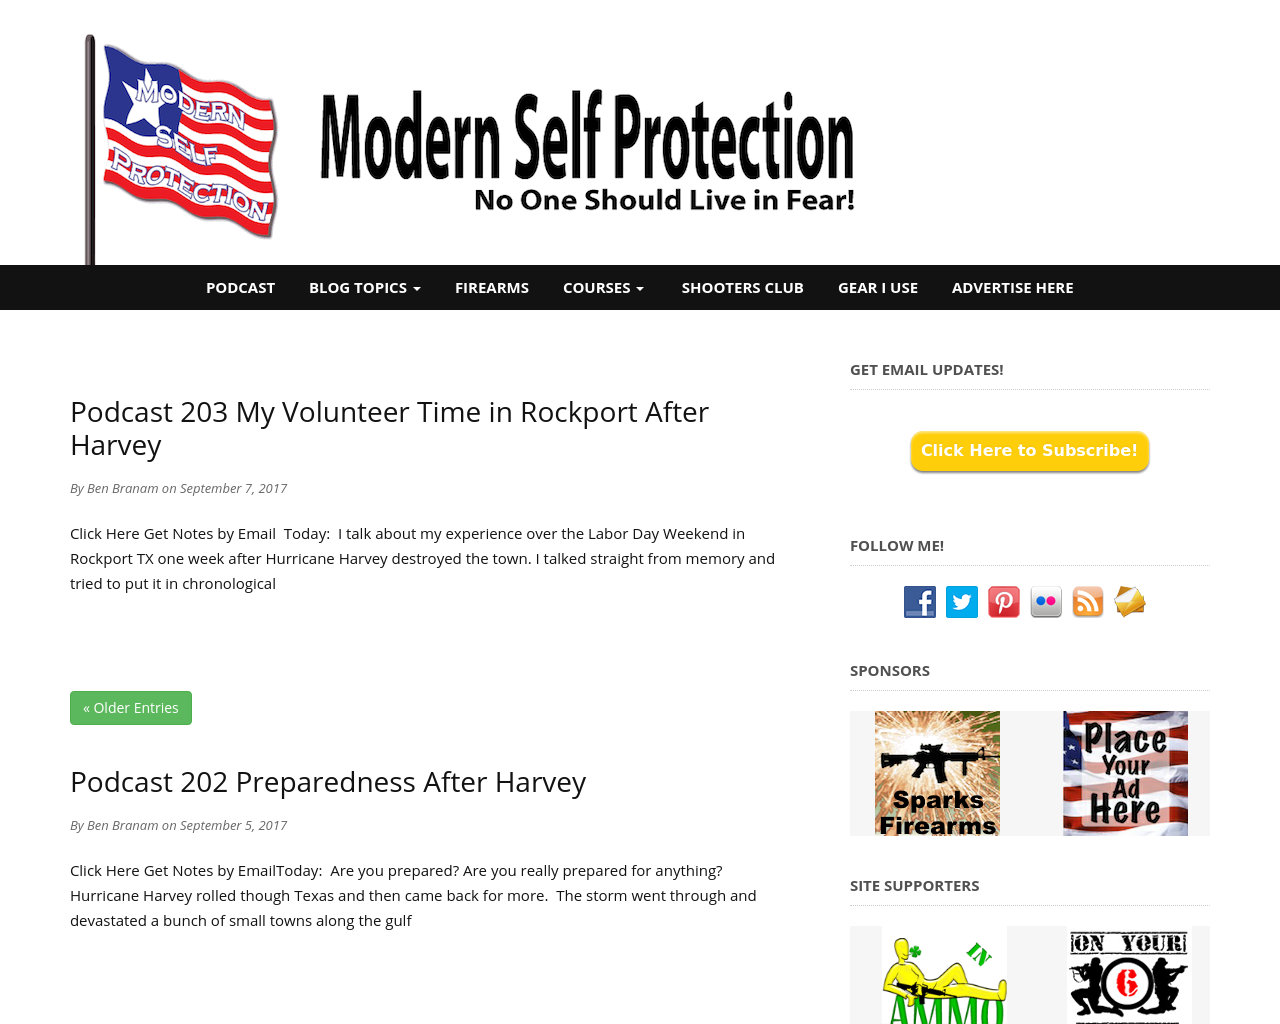 Modern-Self-Protection-Advertising-Reviews-Pricing